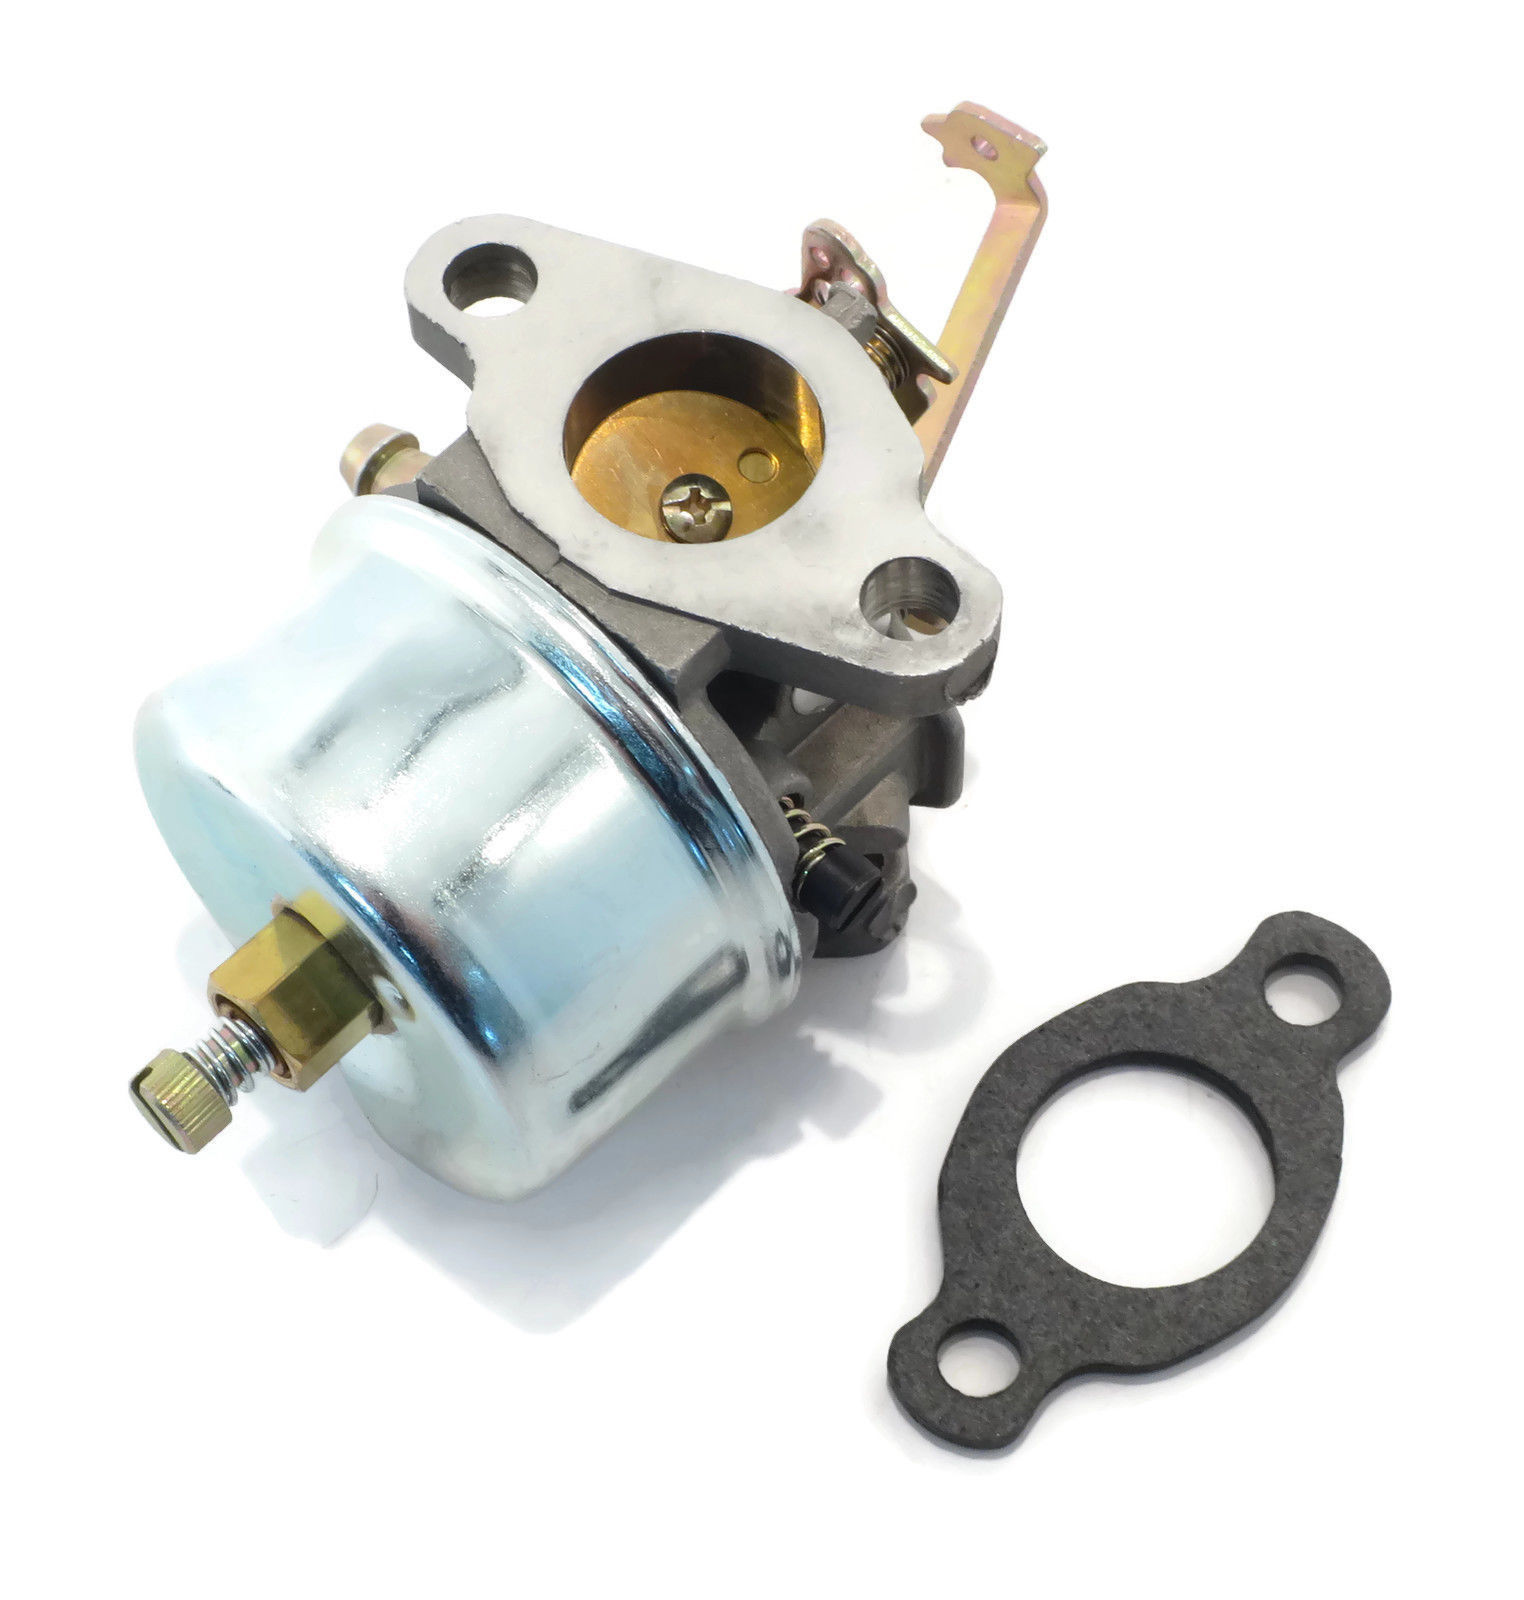 Carburetor Carb Engine Motor Parts For Mini Bikes GO-KART H50 H60 TECUMSEH